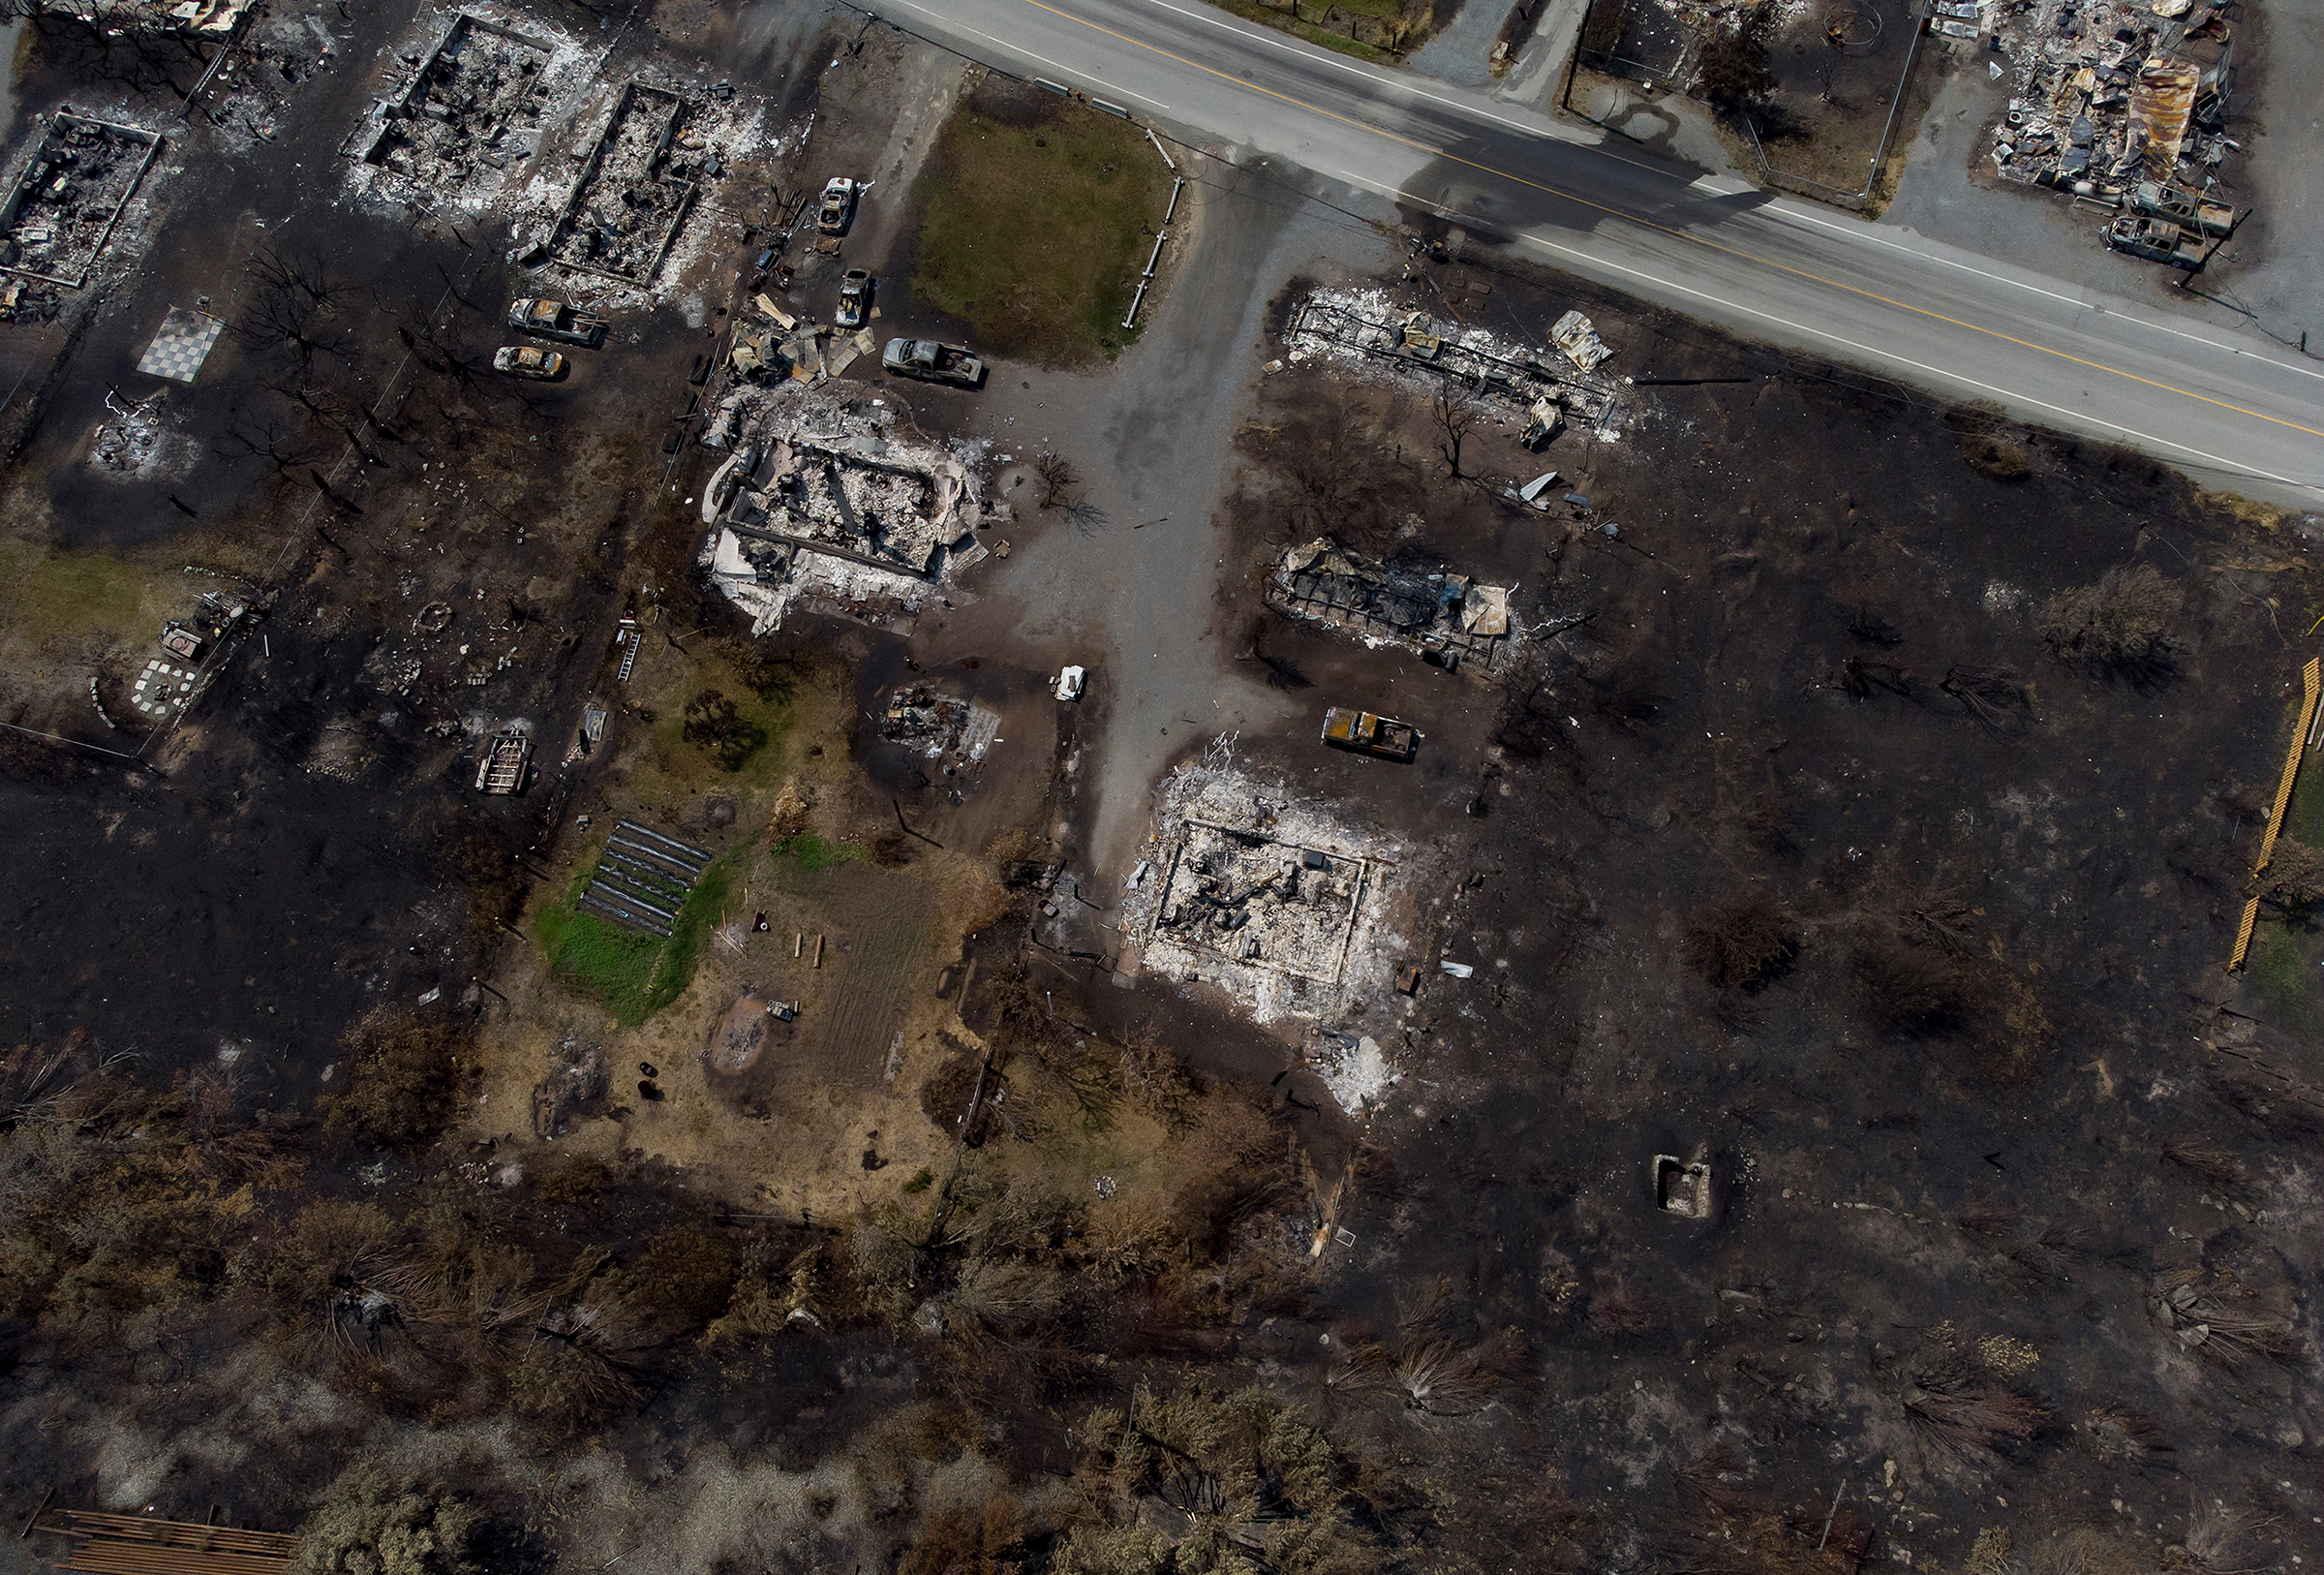 Damaged structures are seen in Lytton, British Columbia, on July 9, 2021, after a wildfire destroyed most of the village on June 30.